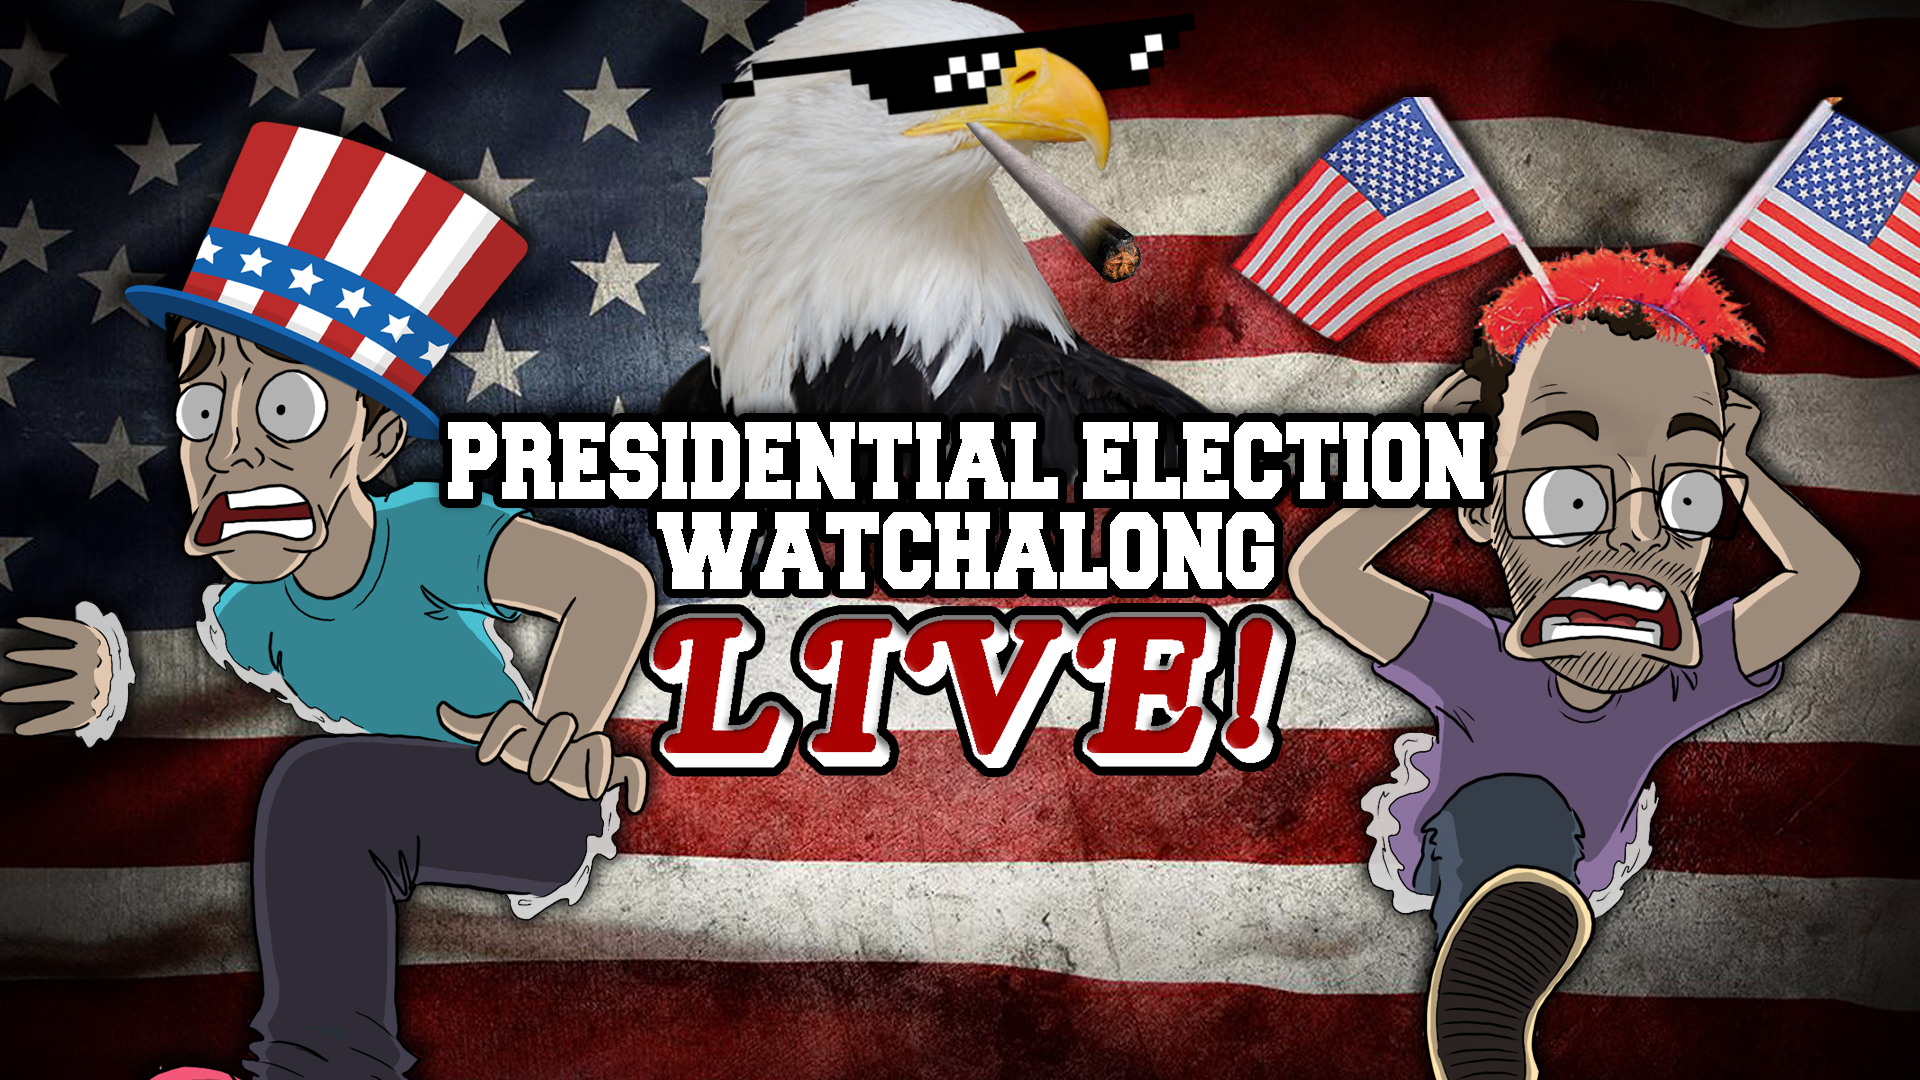 Internet Today On Twitter We Are Live Join Us As We Watch And Discuss Everything That S Going On During Election Night 2020 Click Here Https T Co Bqpq4rwter Https T Co Hq4b4ipcug